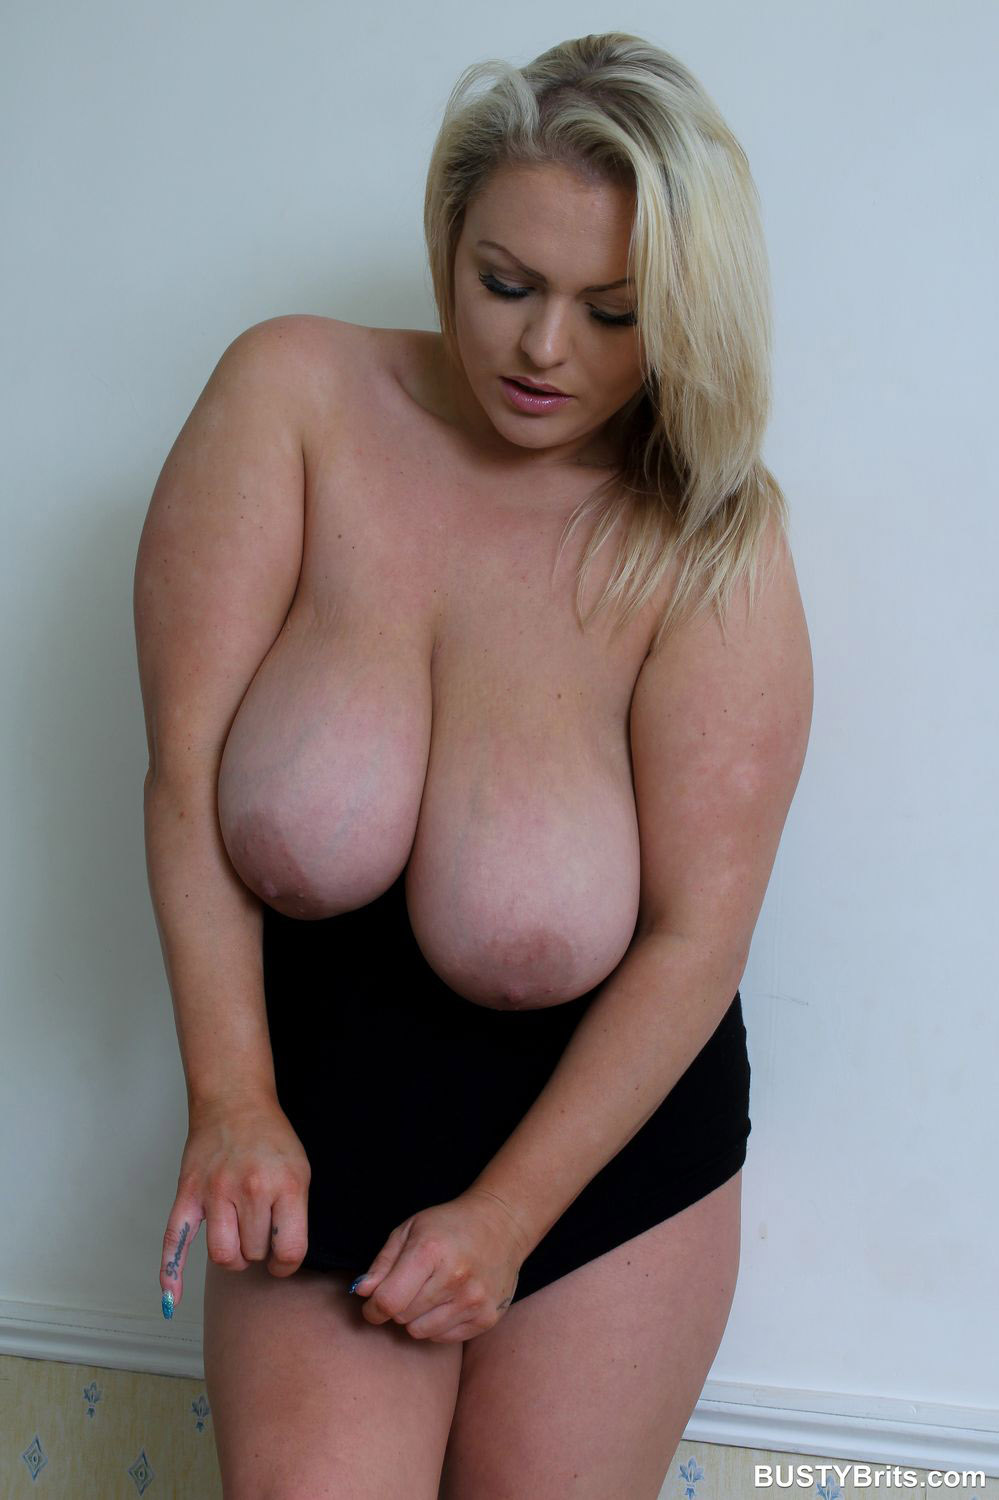 Hot british porn stars nude version